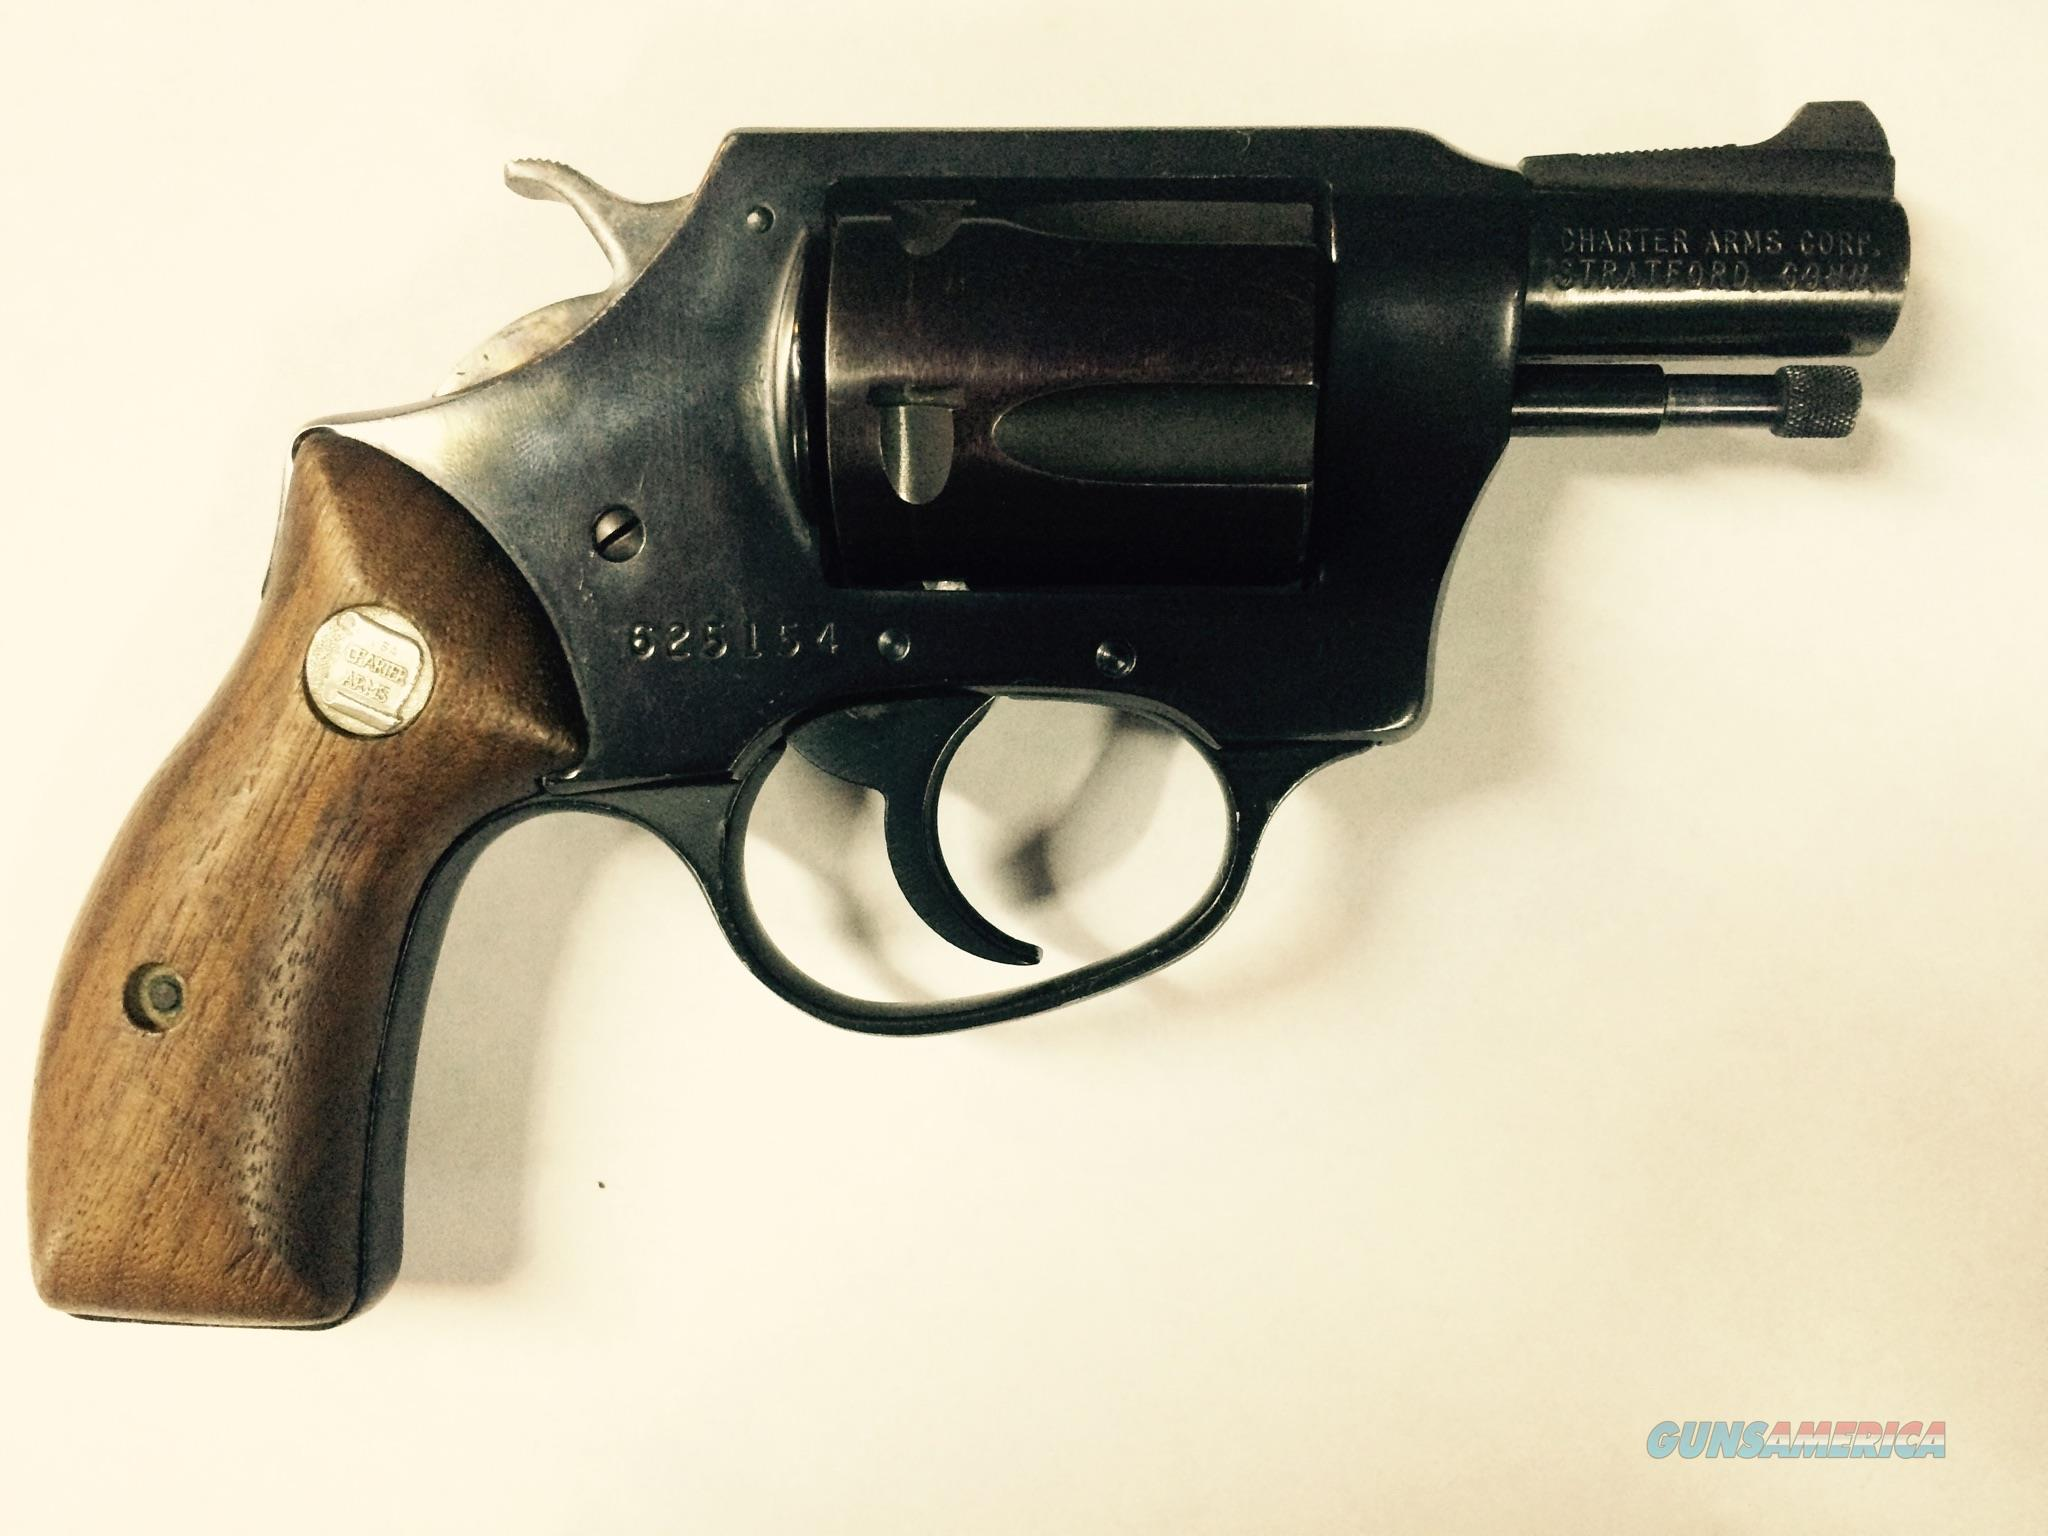 CHARTER ARMS UNDERCOVER REVOLVER  Guns > Pistols > Charter Arms Revolvers